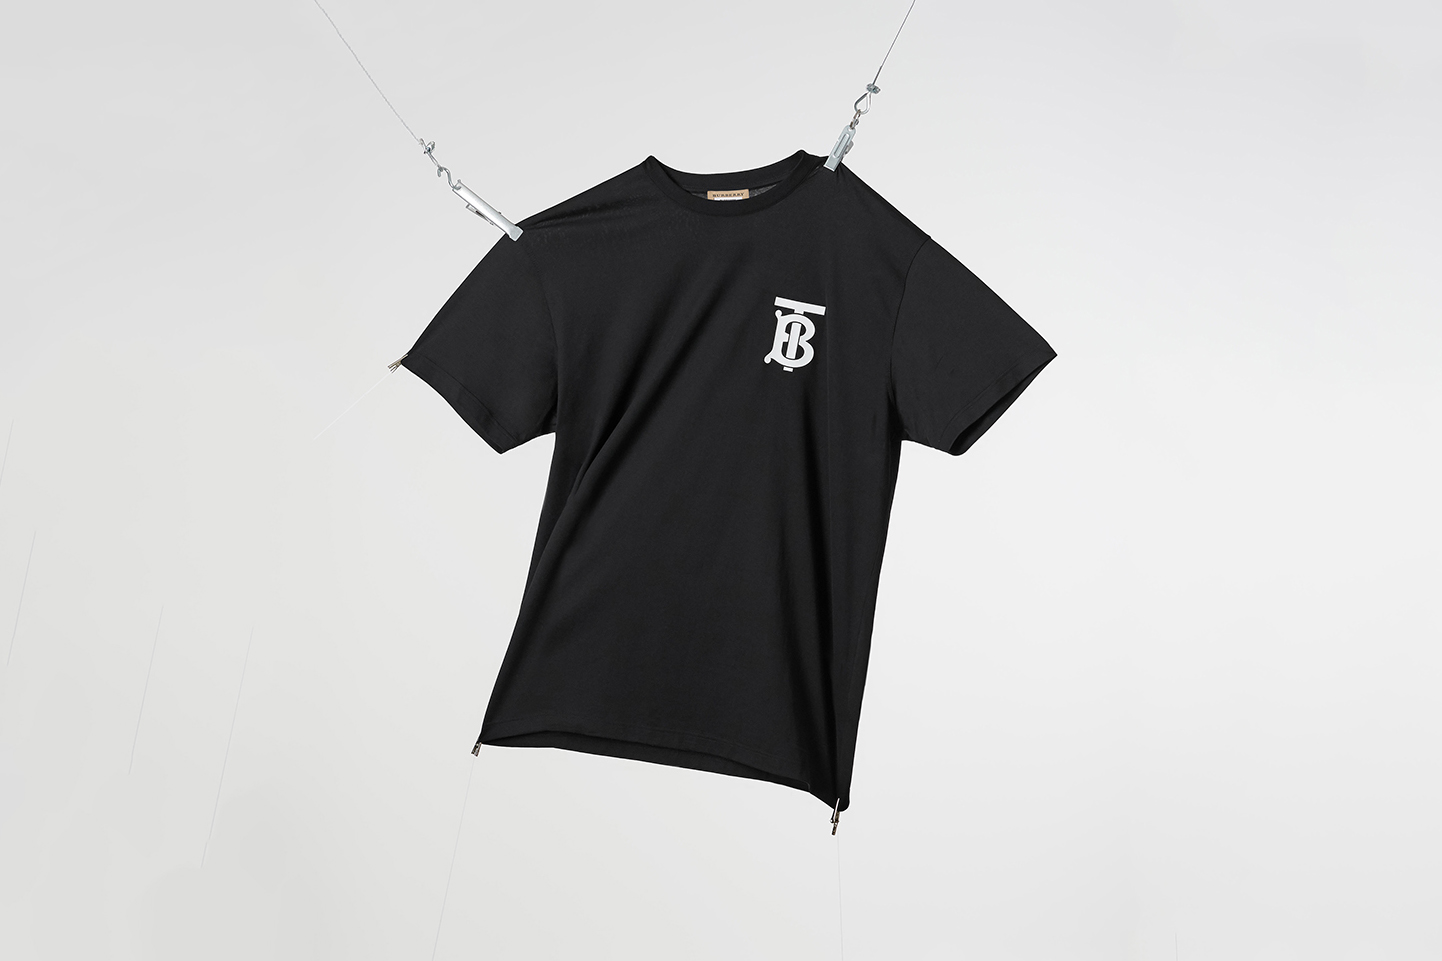 Thomas Burberry Monogram T-shirt